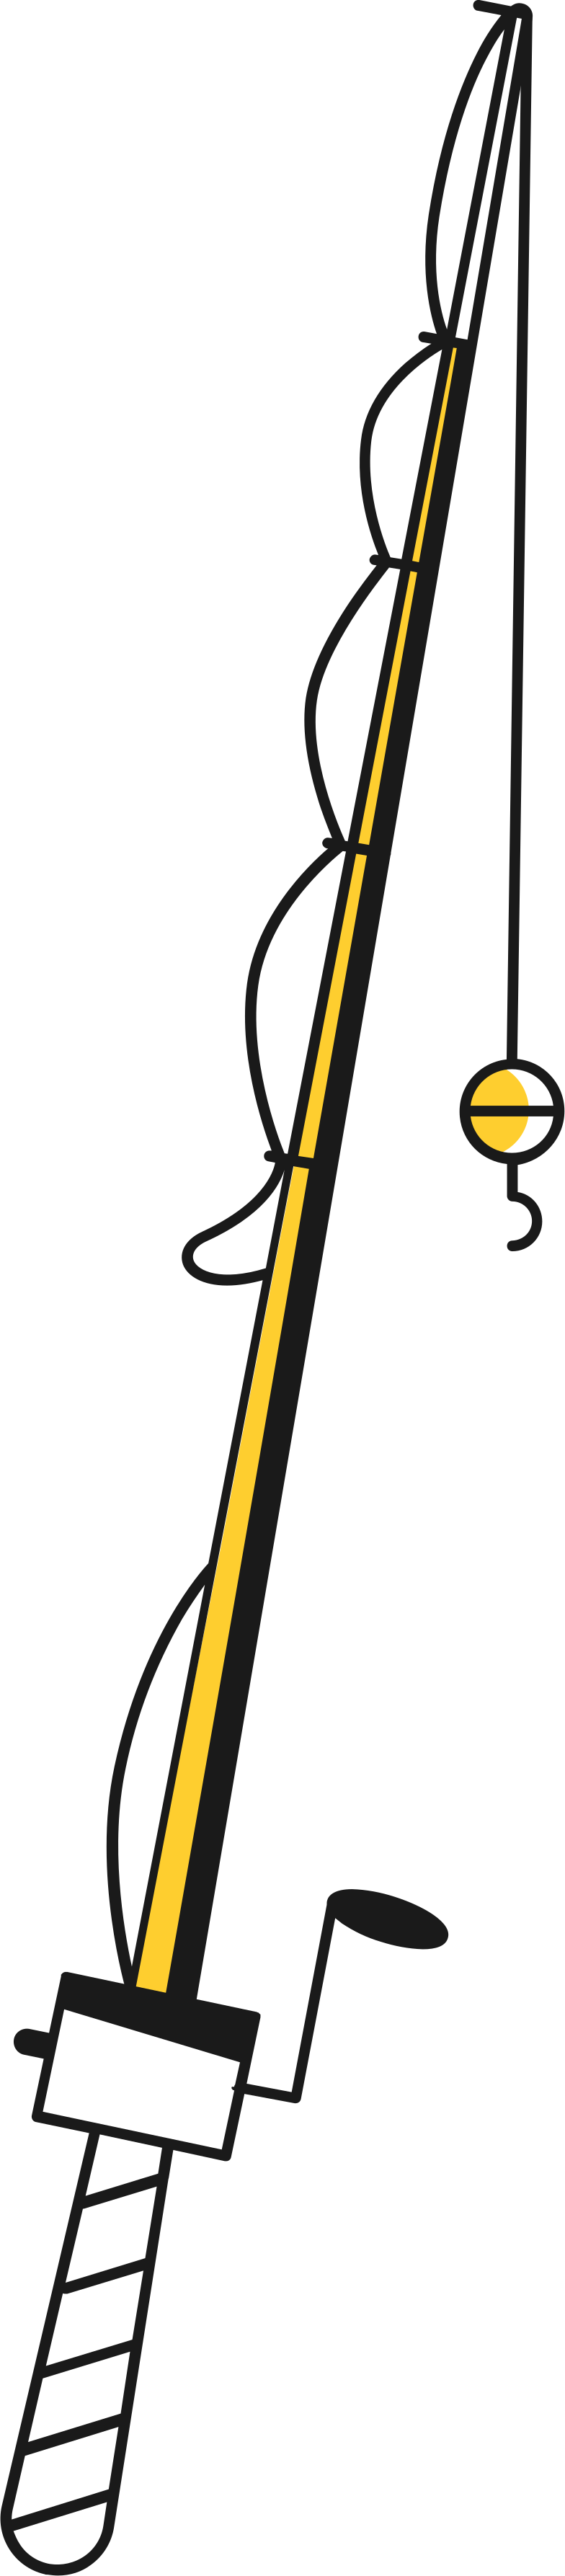 fishing rod Clipart illustration in PNG, SVG